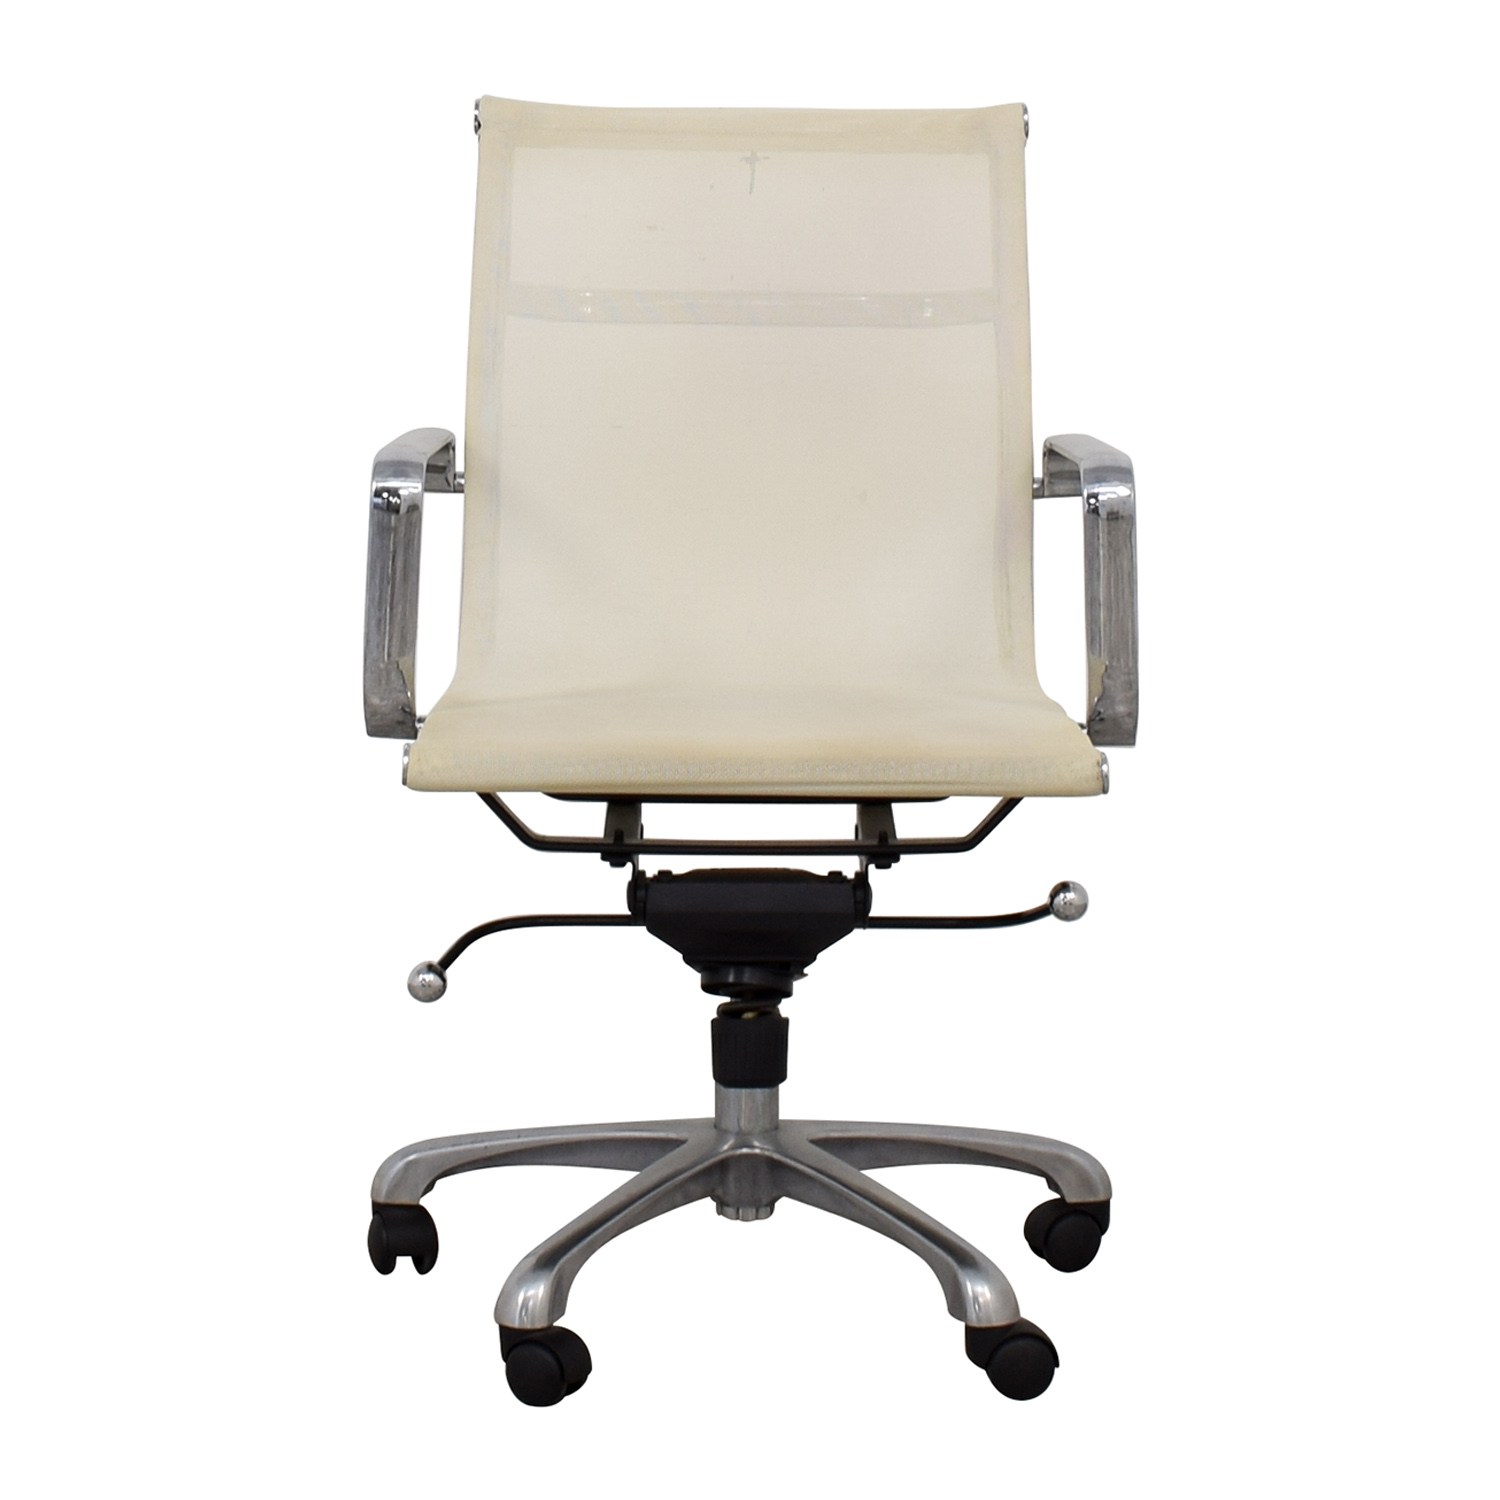 White Office Chair for sale